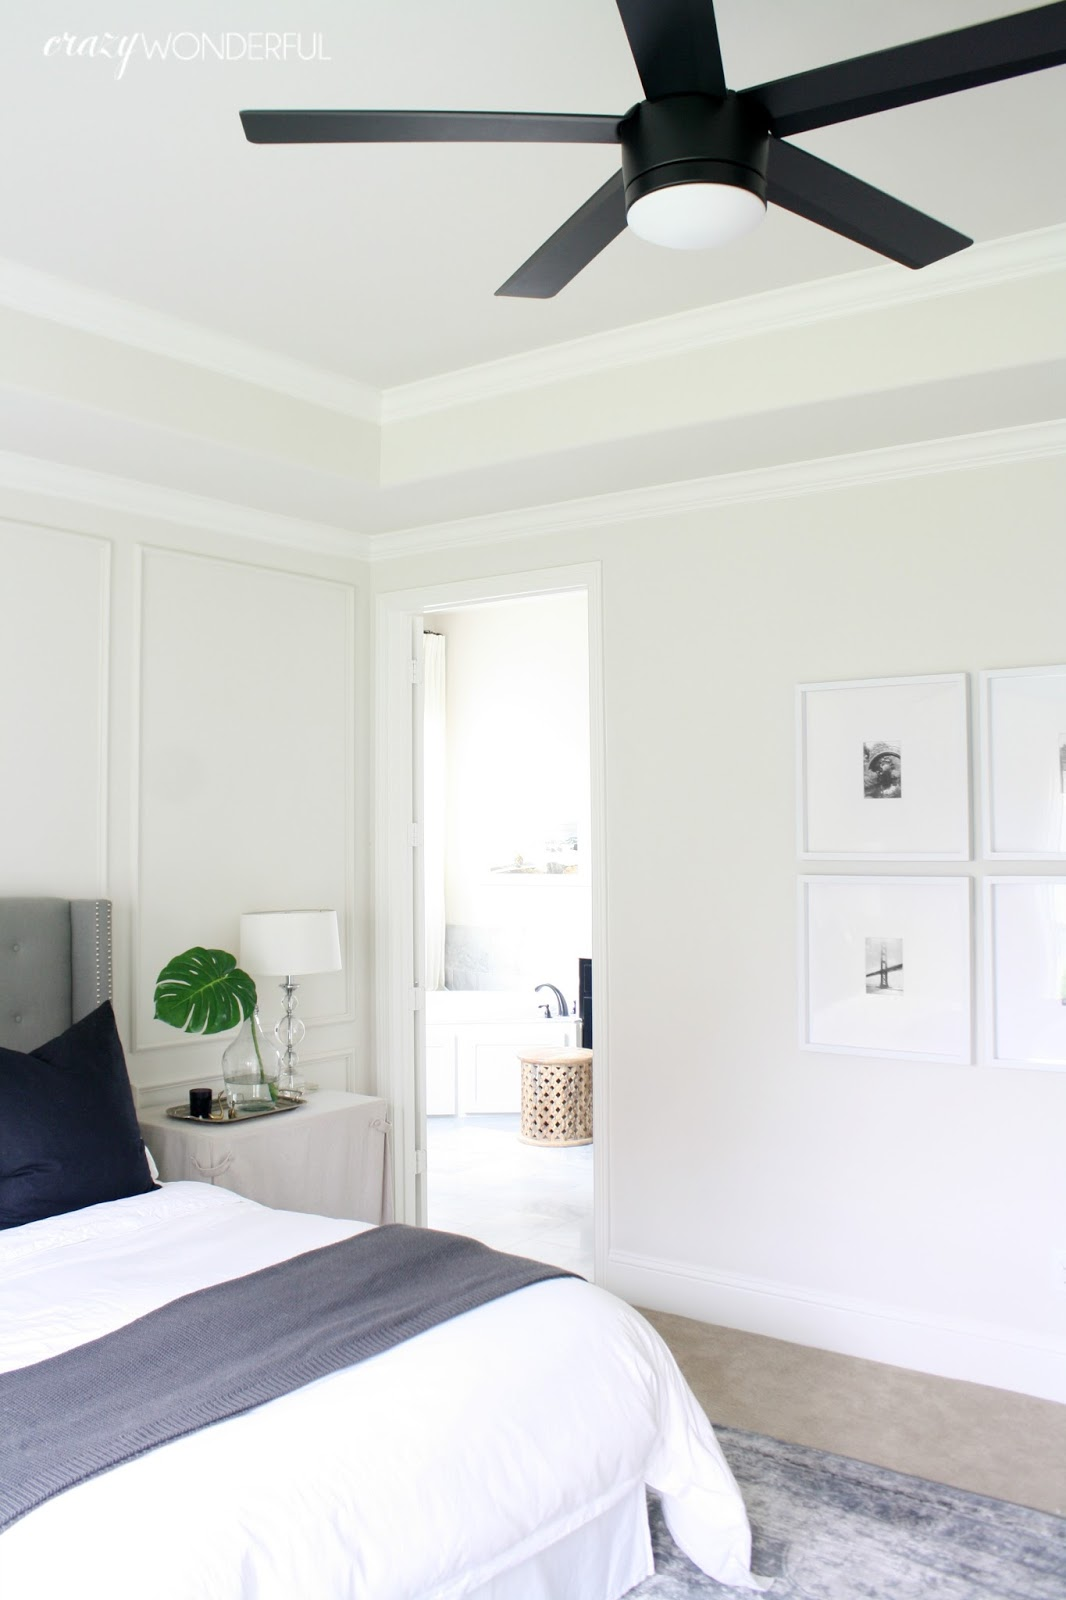 ceiling fans for bedrooms. bedroom ceiling fan  Crazy Wonderful